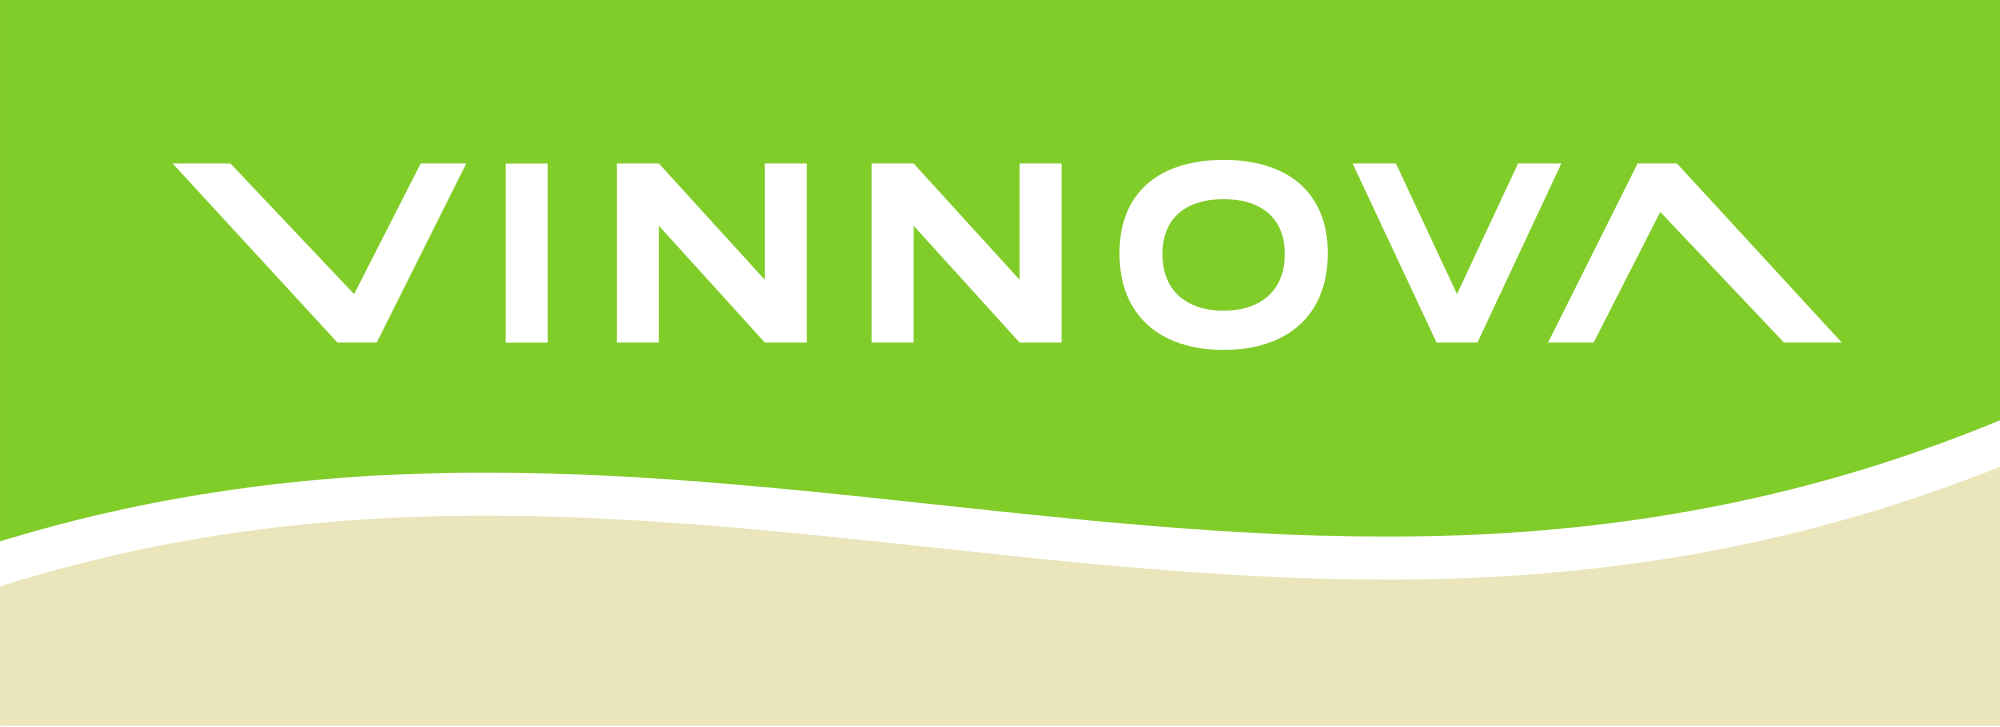 VINNOVA Challenge Driven Innovation